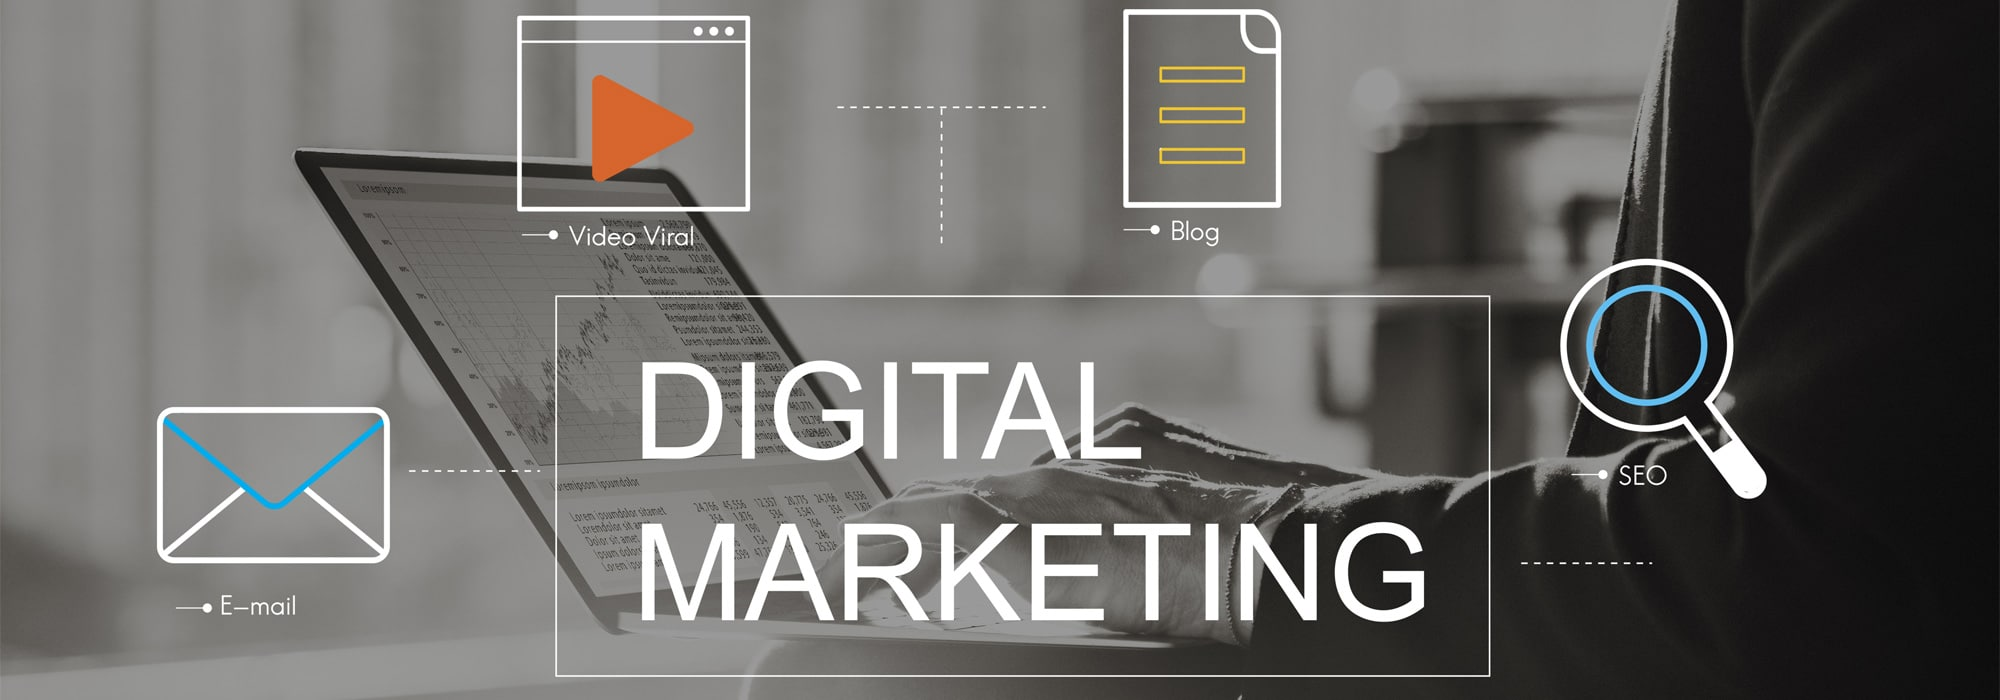 Important facts about Digital Marketing South Yarra